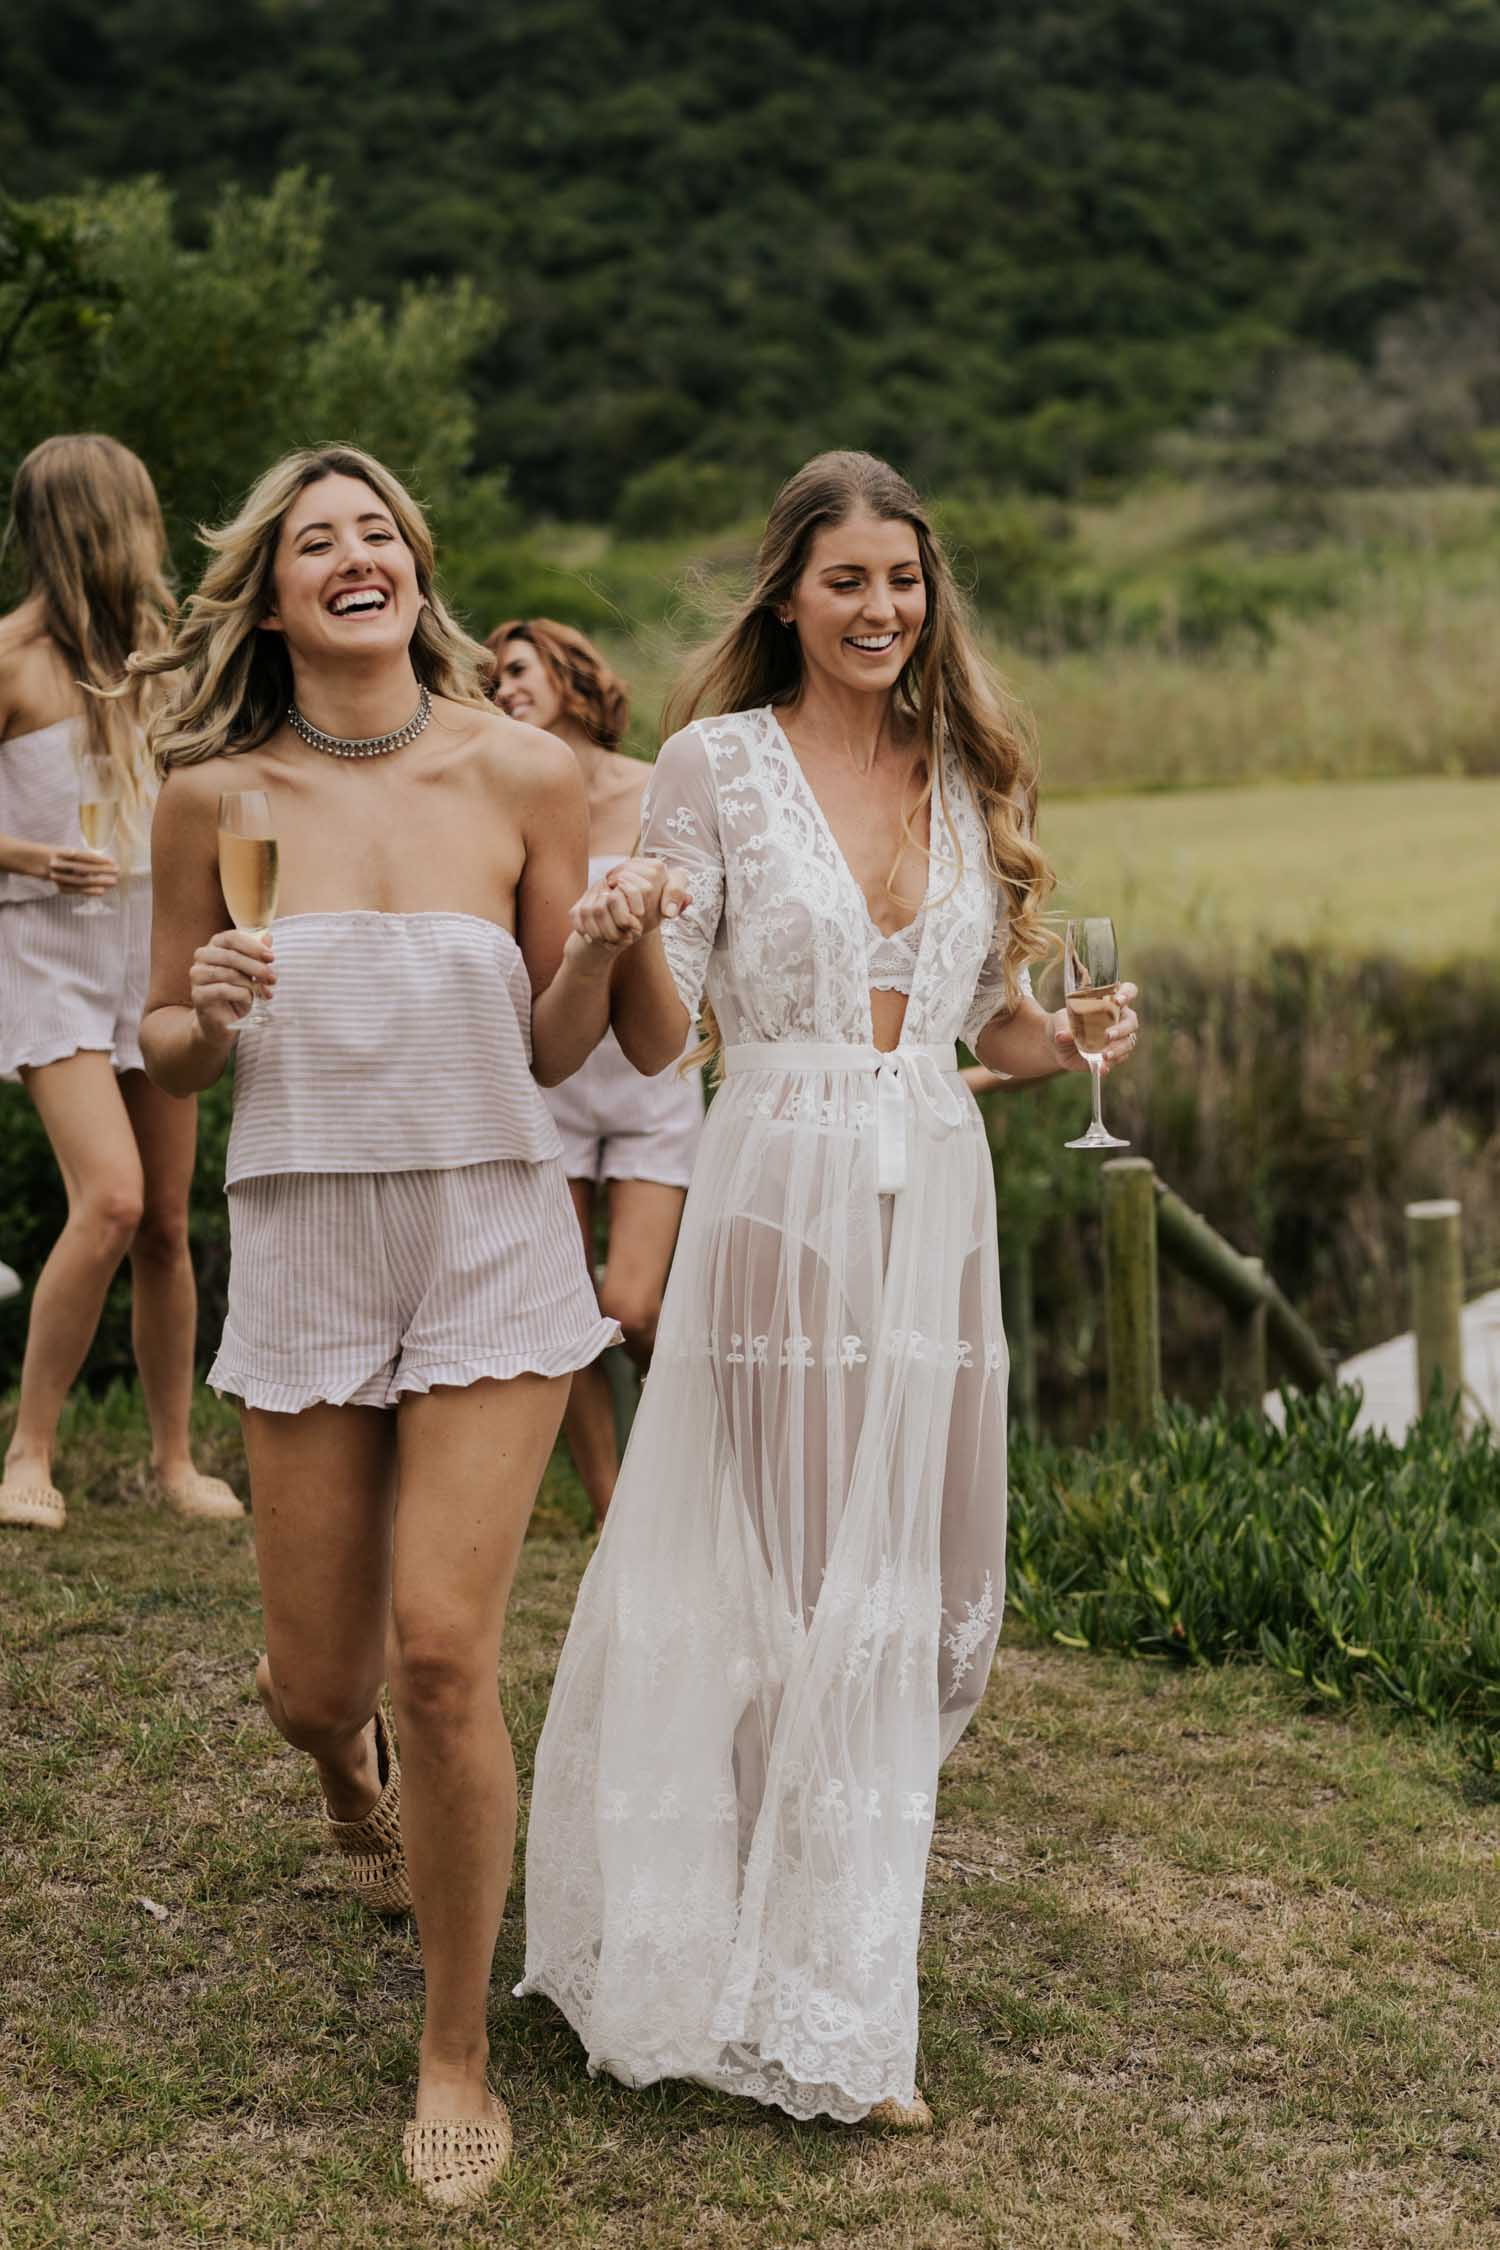 Beautiful Boho bride with long curly hair dressed in white lace PJs and gown dances and drinks champagne with her bridesmaids